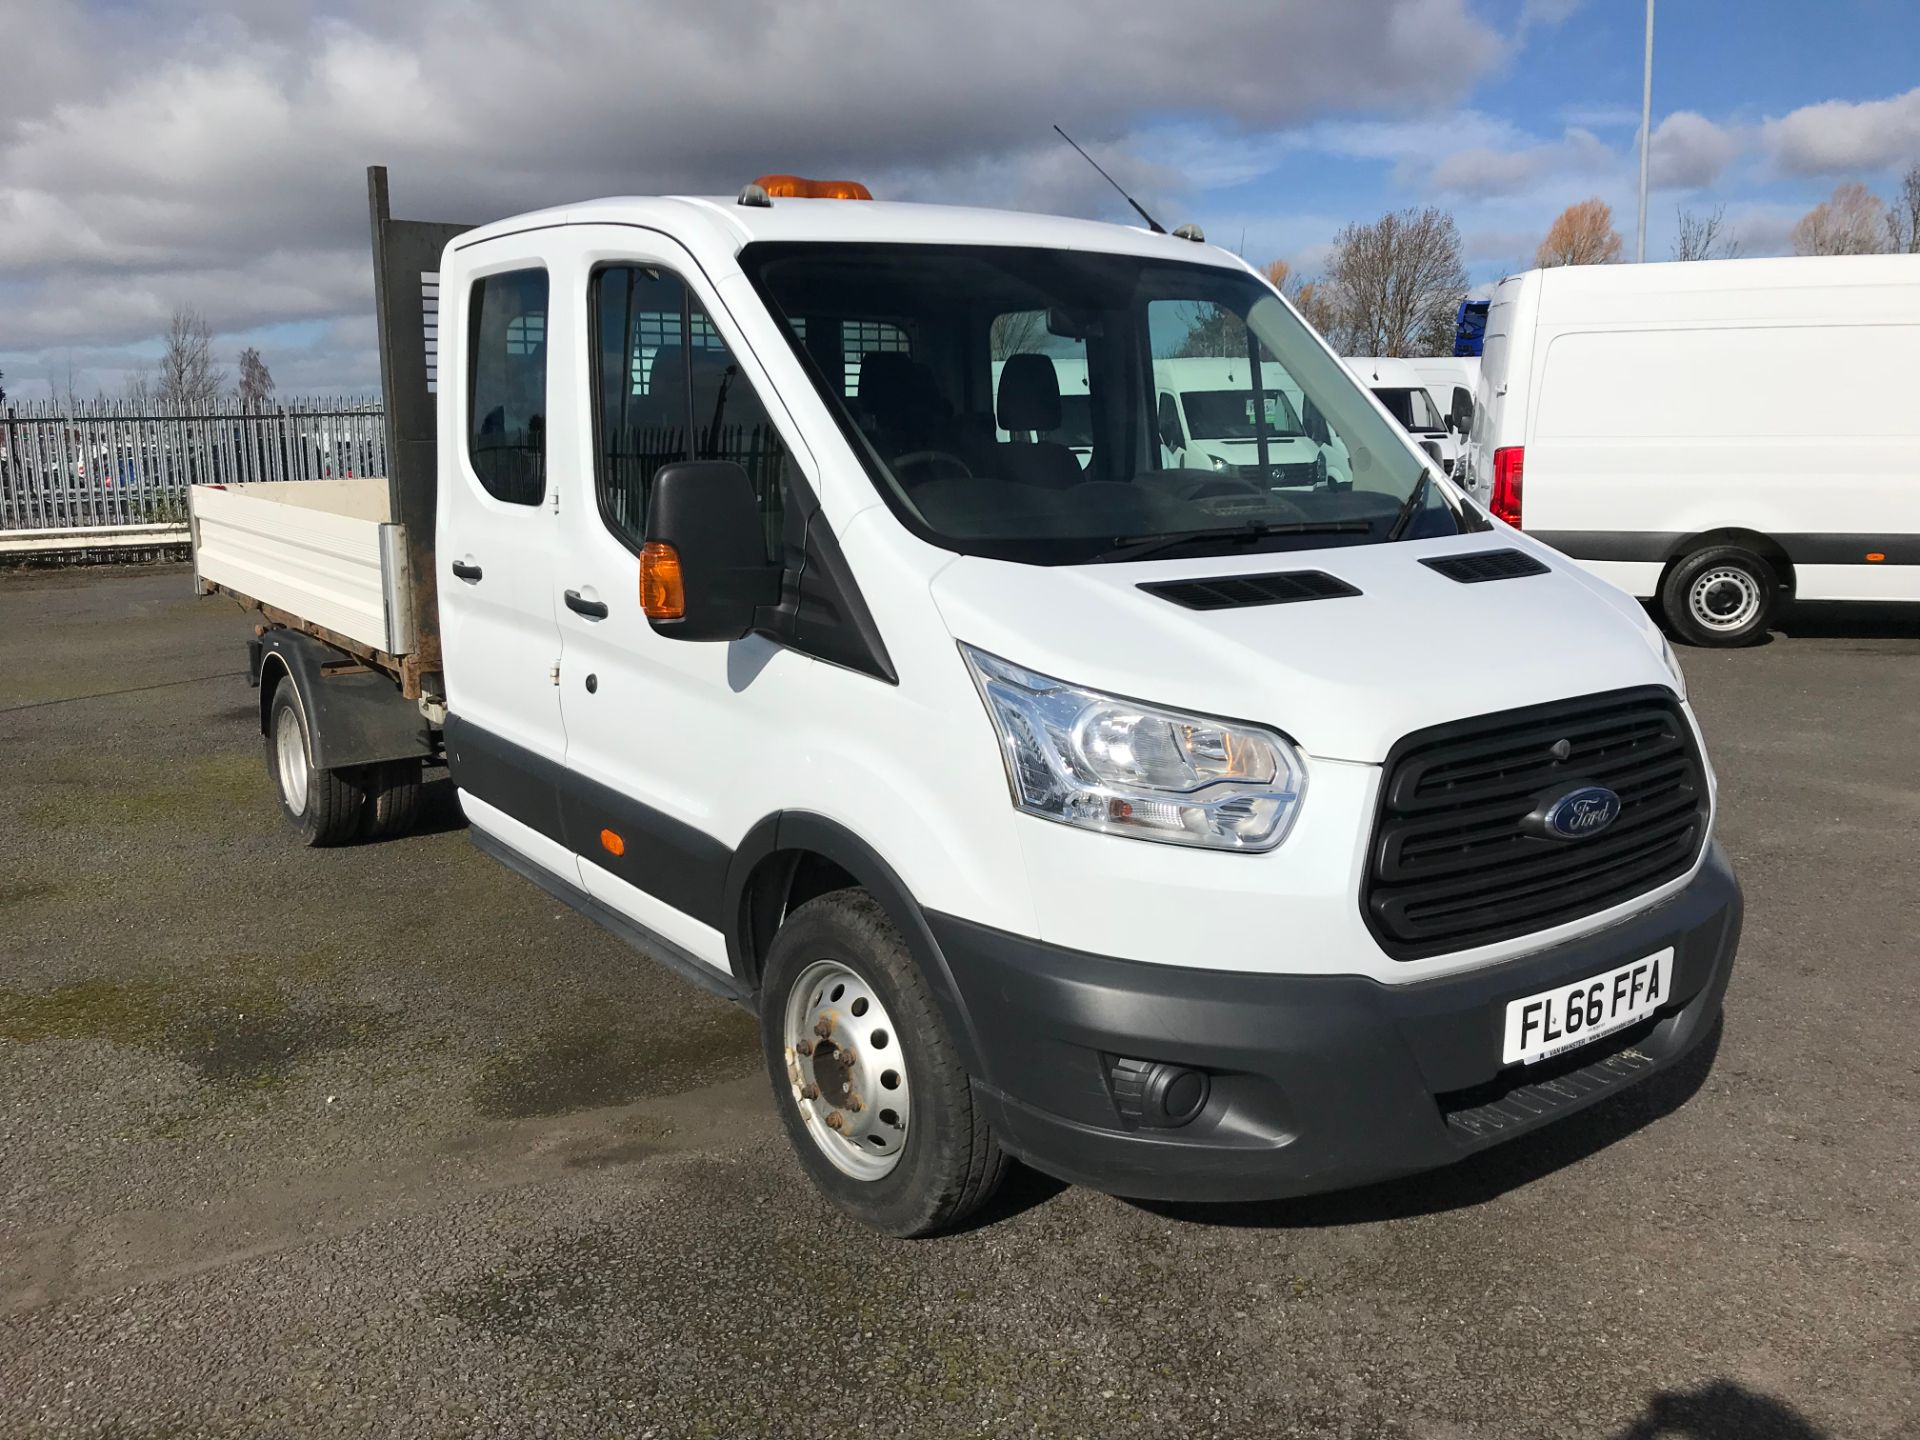 2016 Ford Transit 2.2 Tdci 125Ps Double Cab Chassis (FL66FFA)